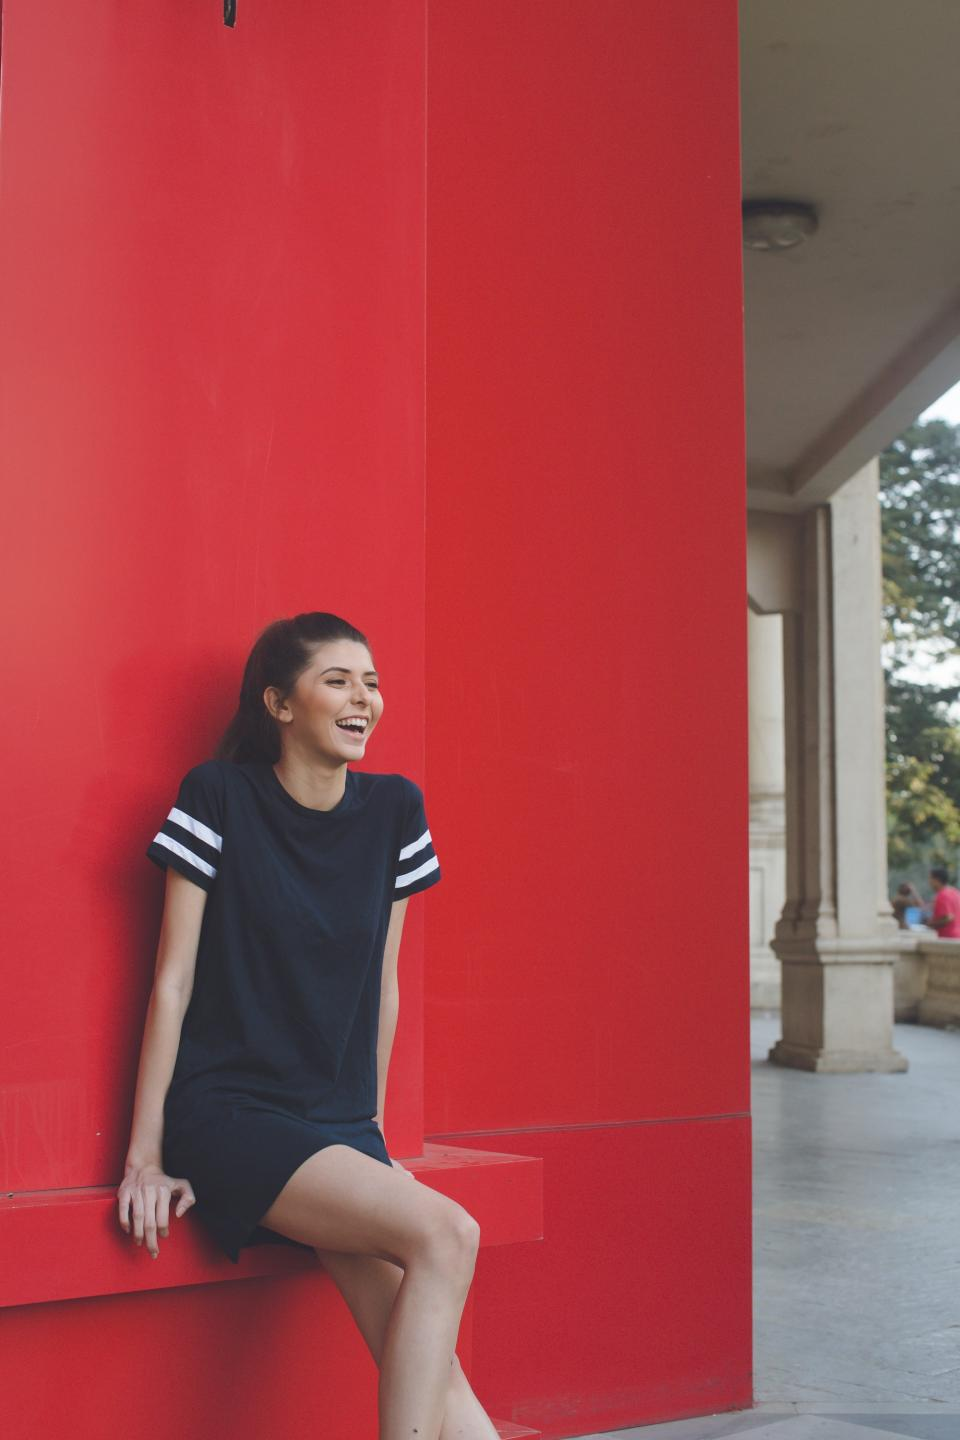 people, girl, woman, smile, happy, alone, red, wall, building, outside